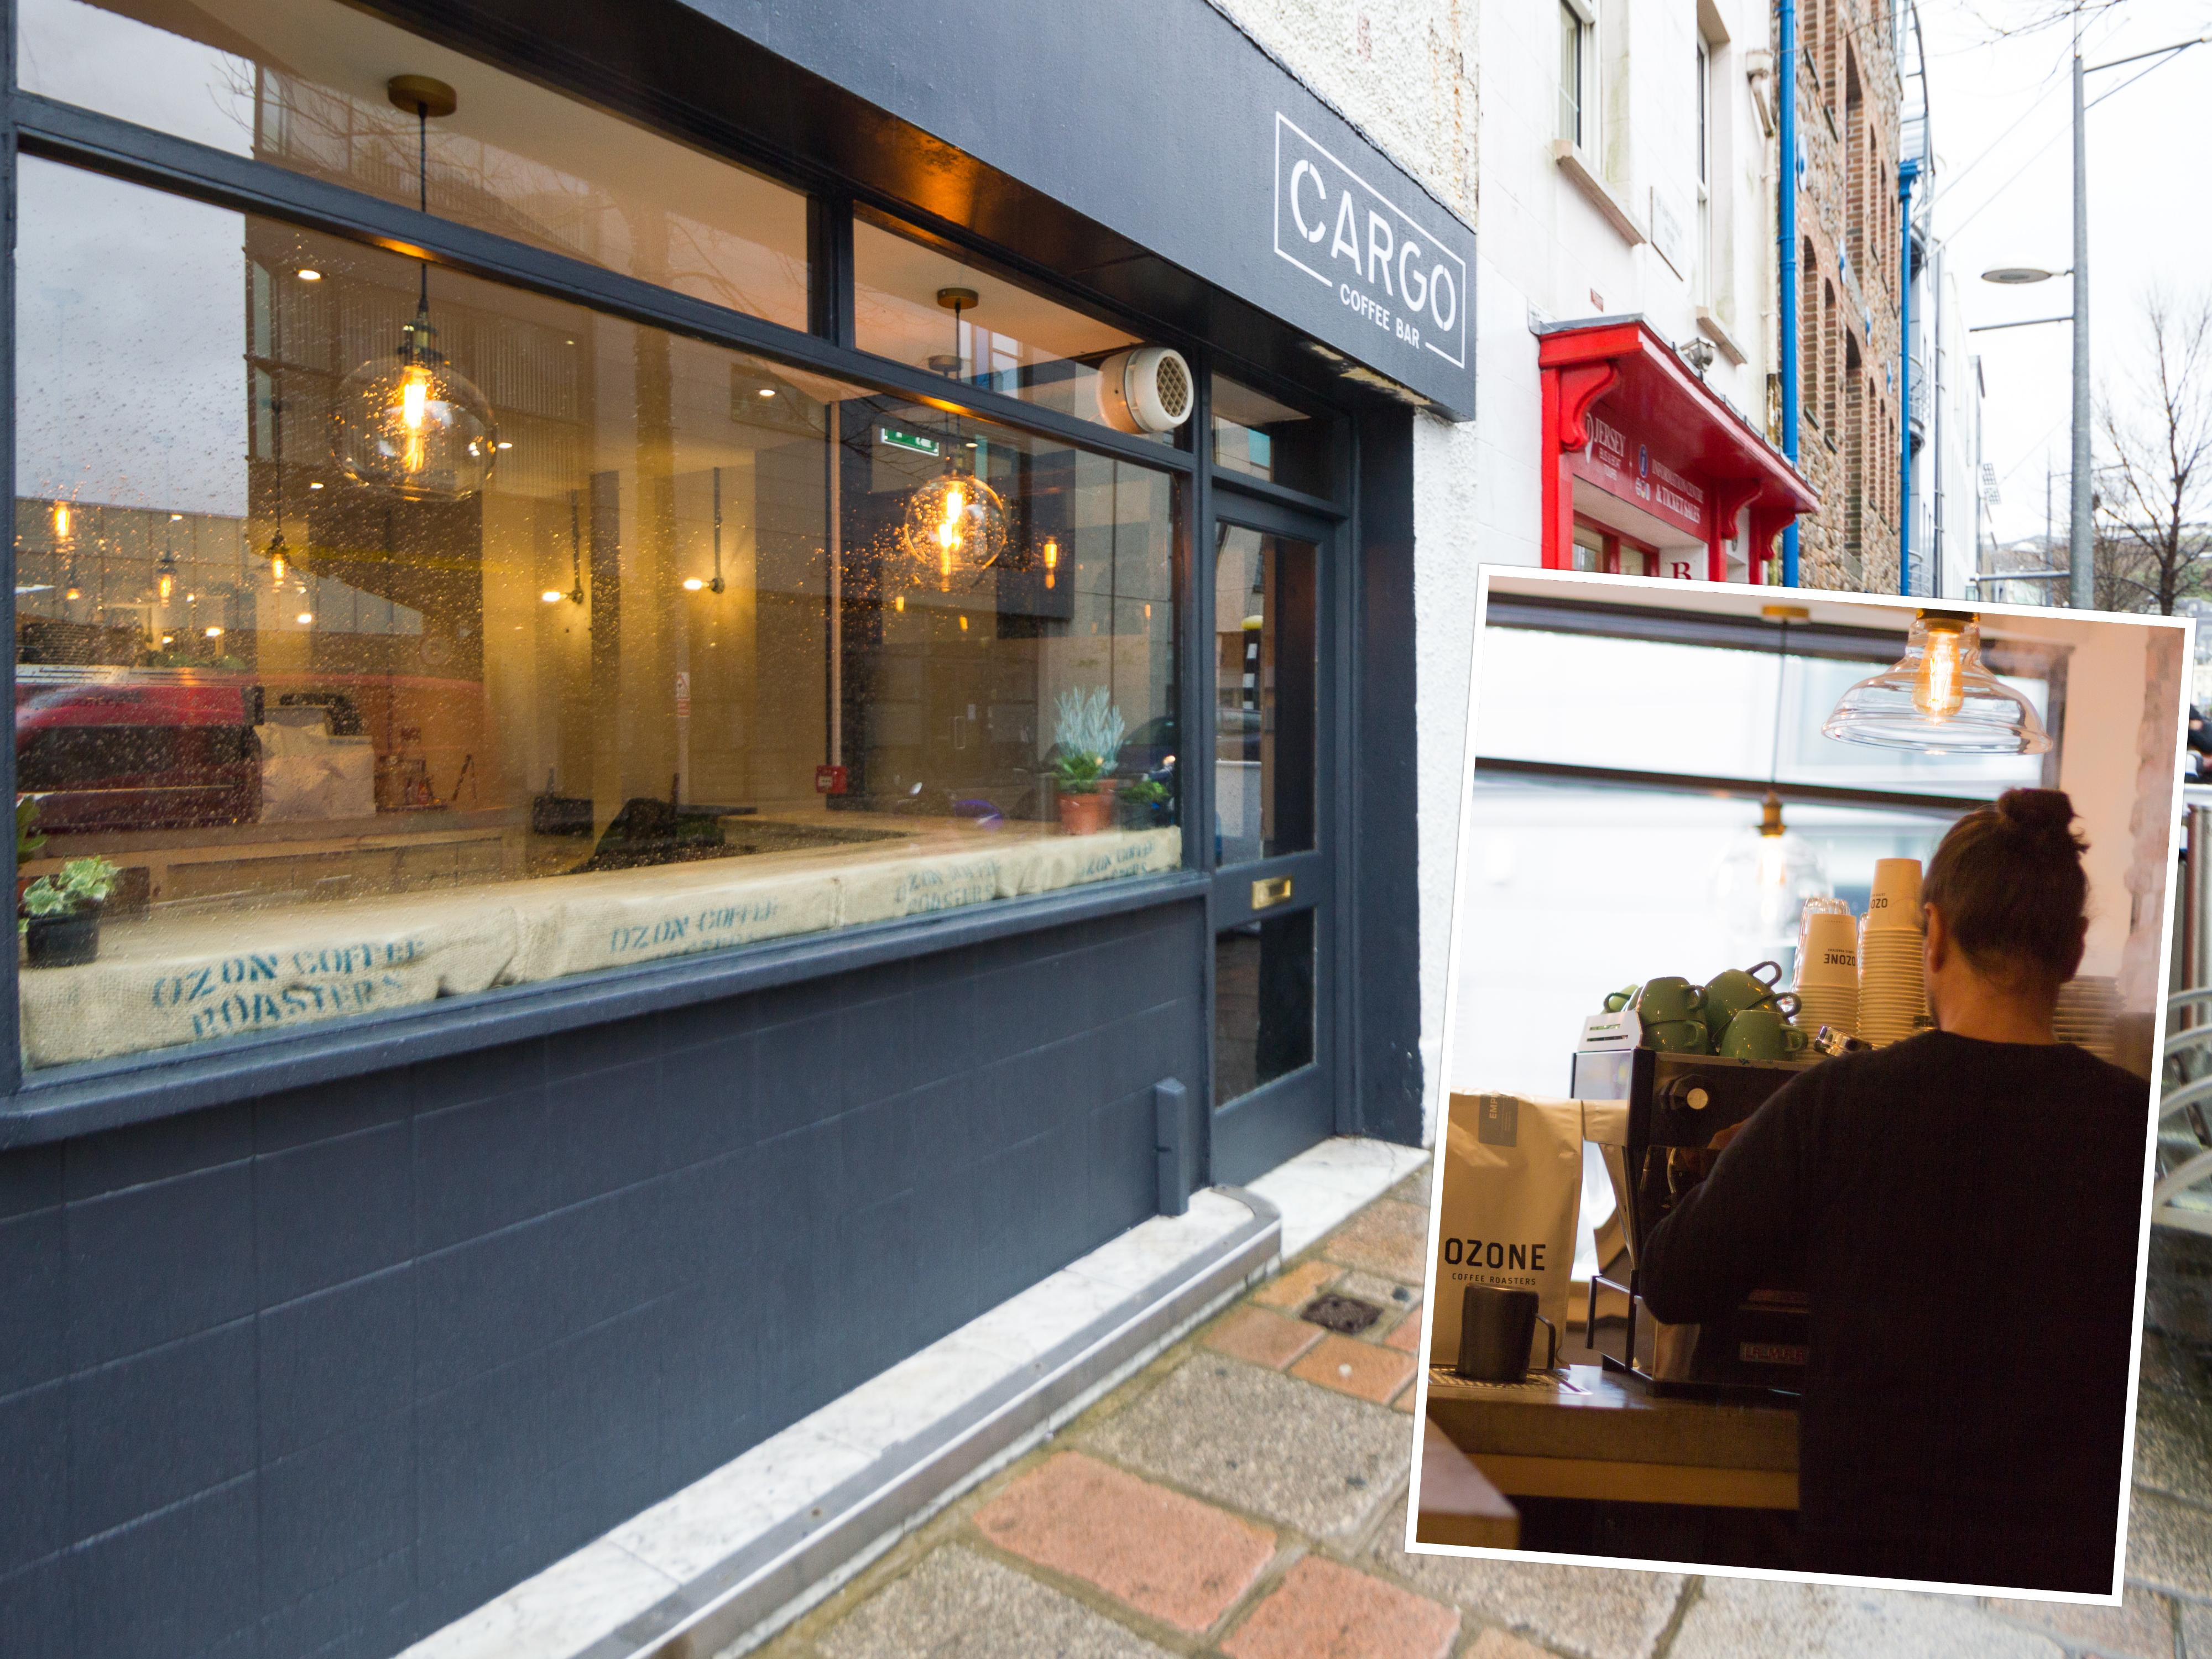 Sun, sea and coffee beans Islander opens café after 9 years in